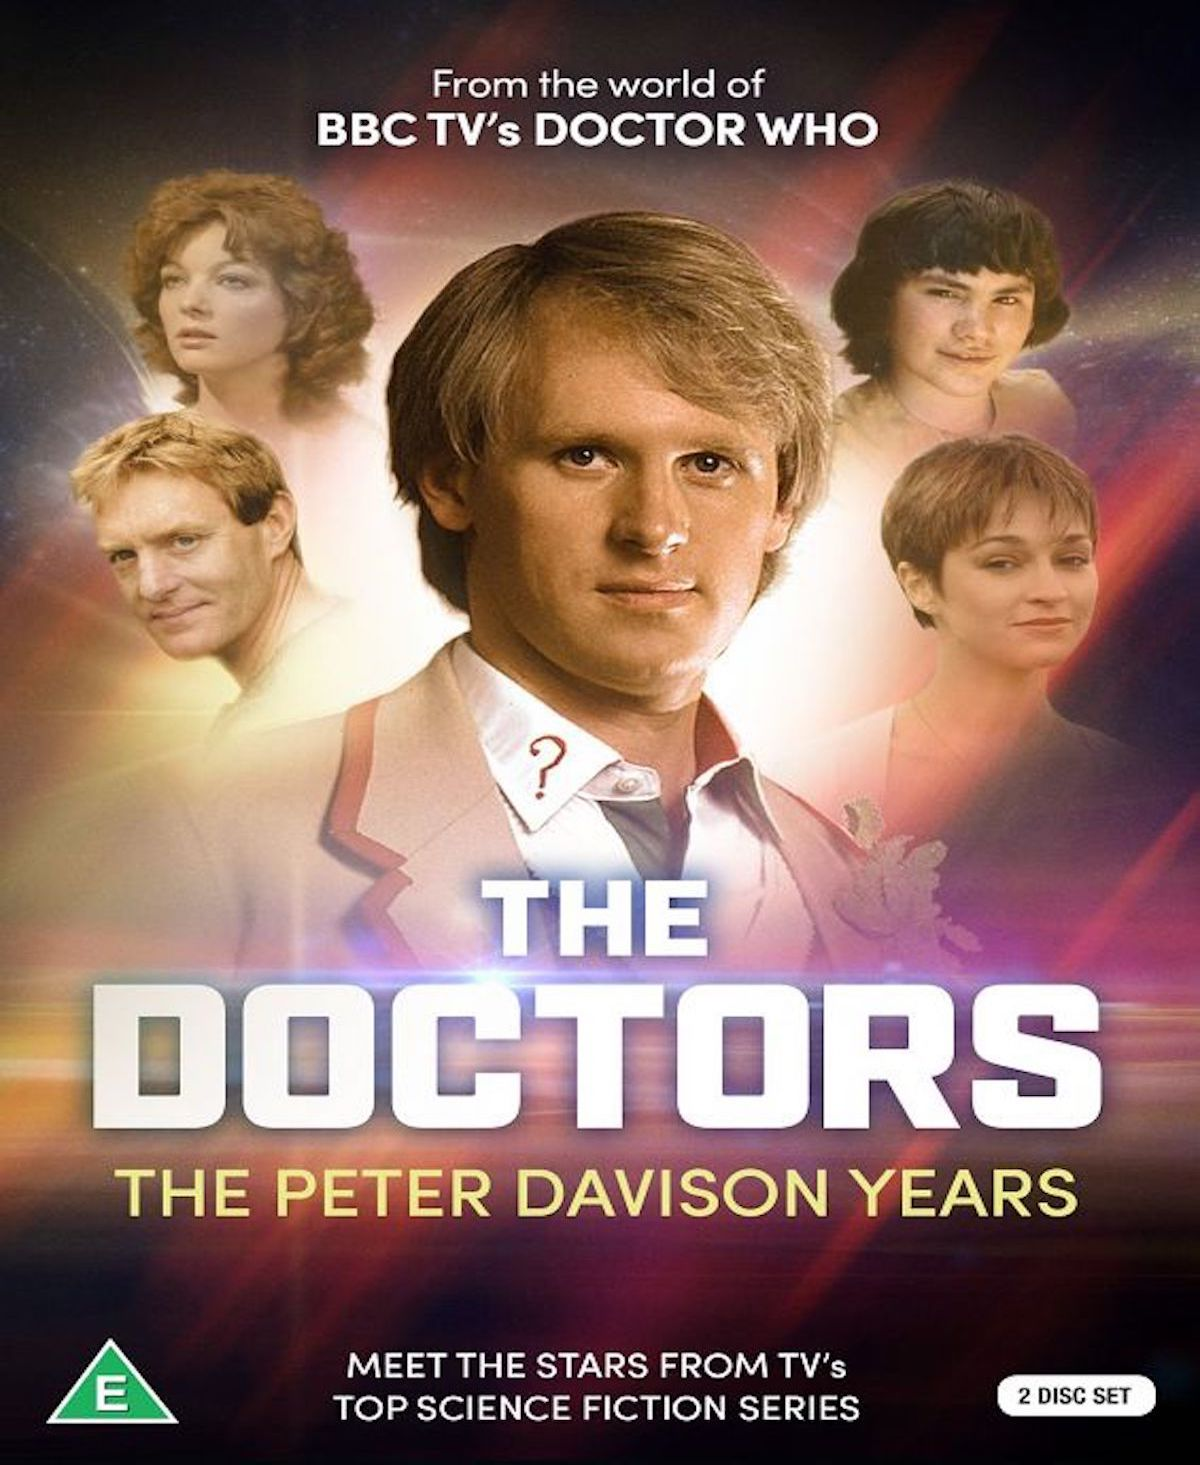 The Doctors - The Peter Davison Years